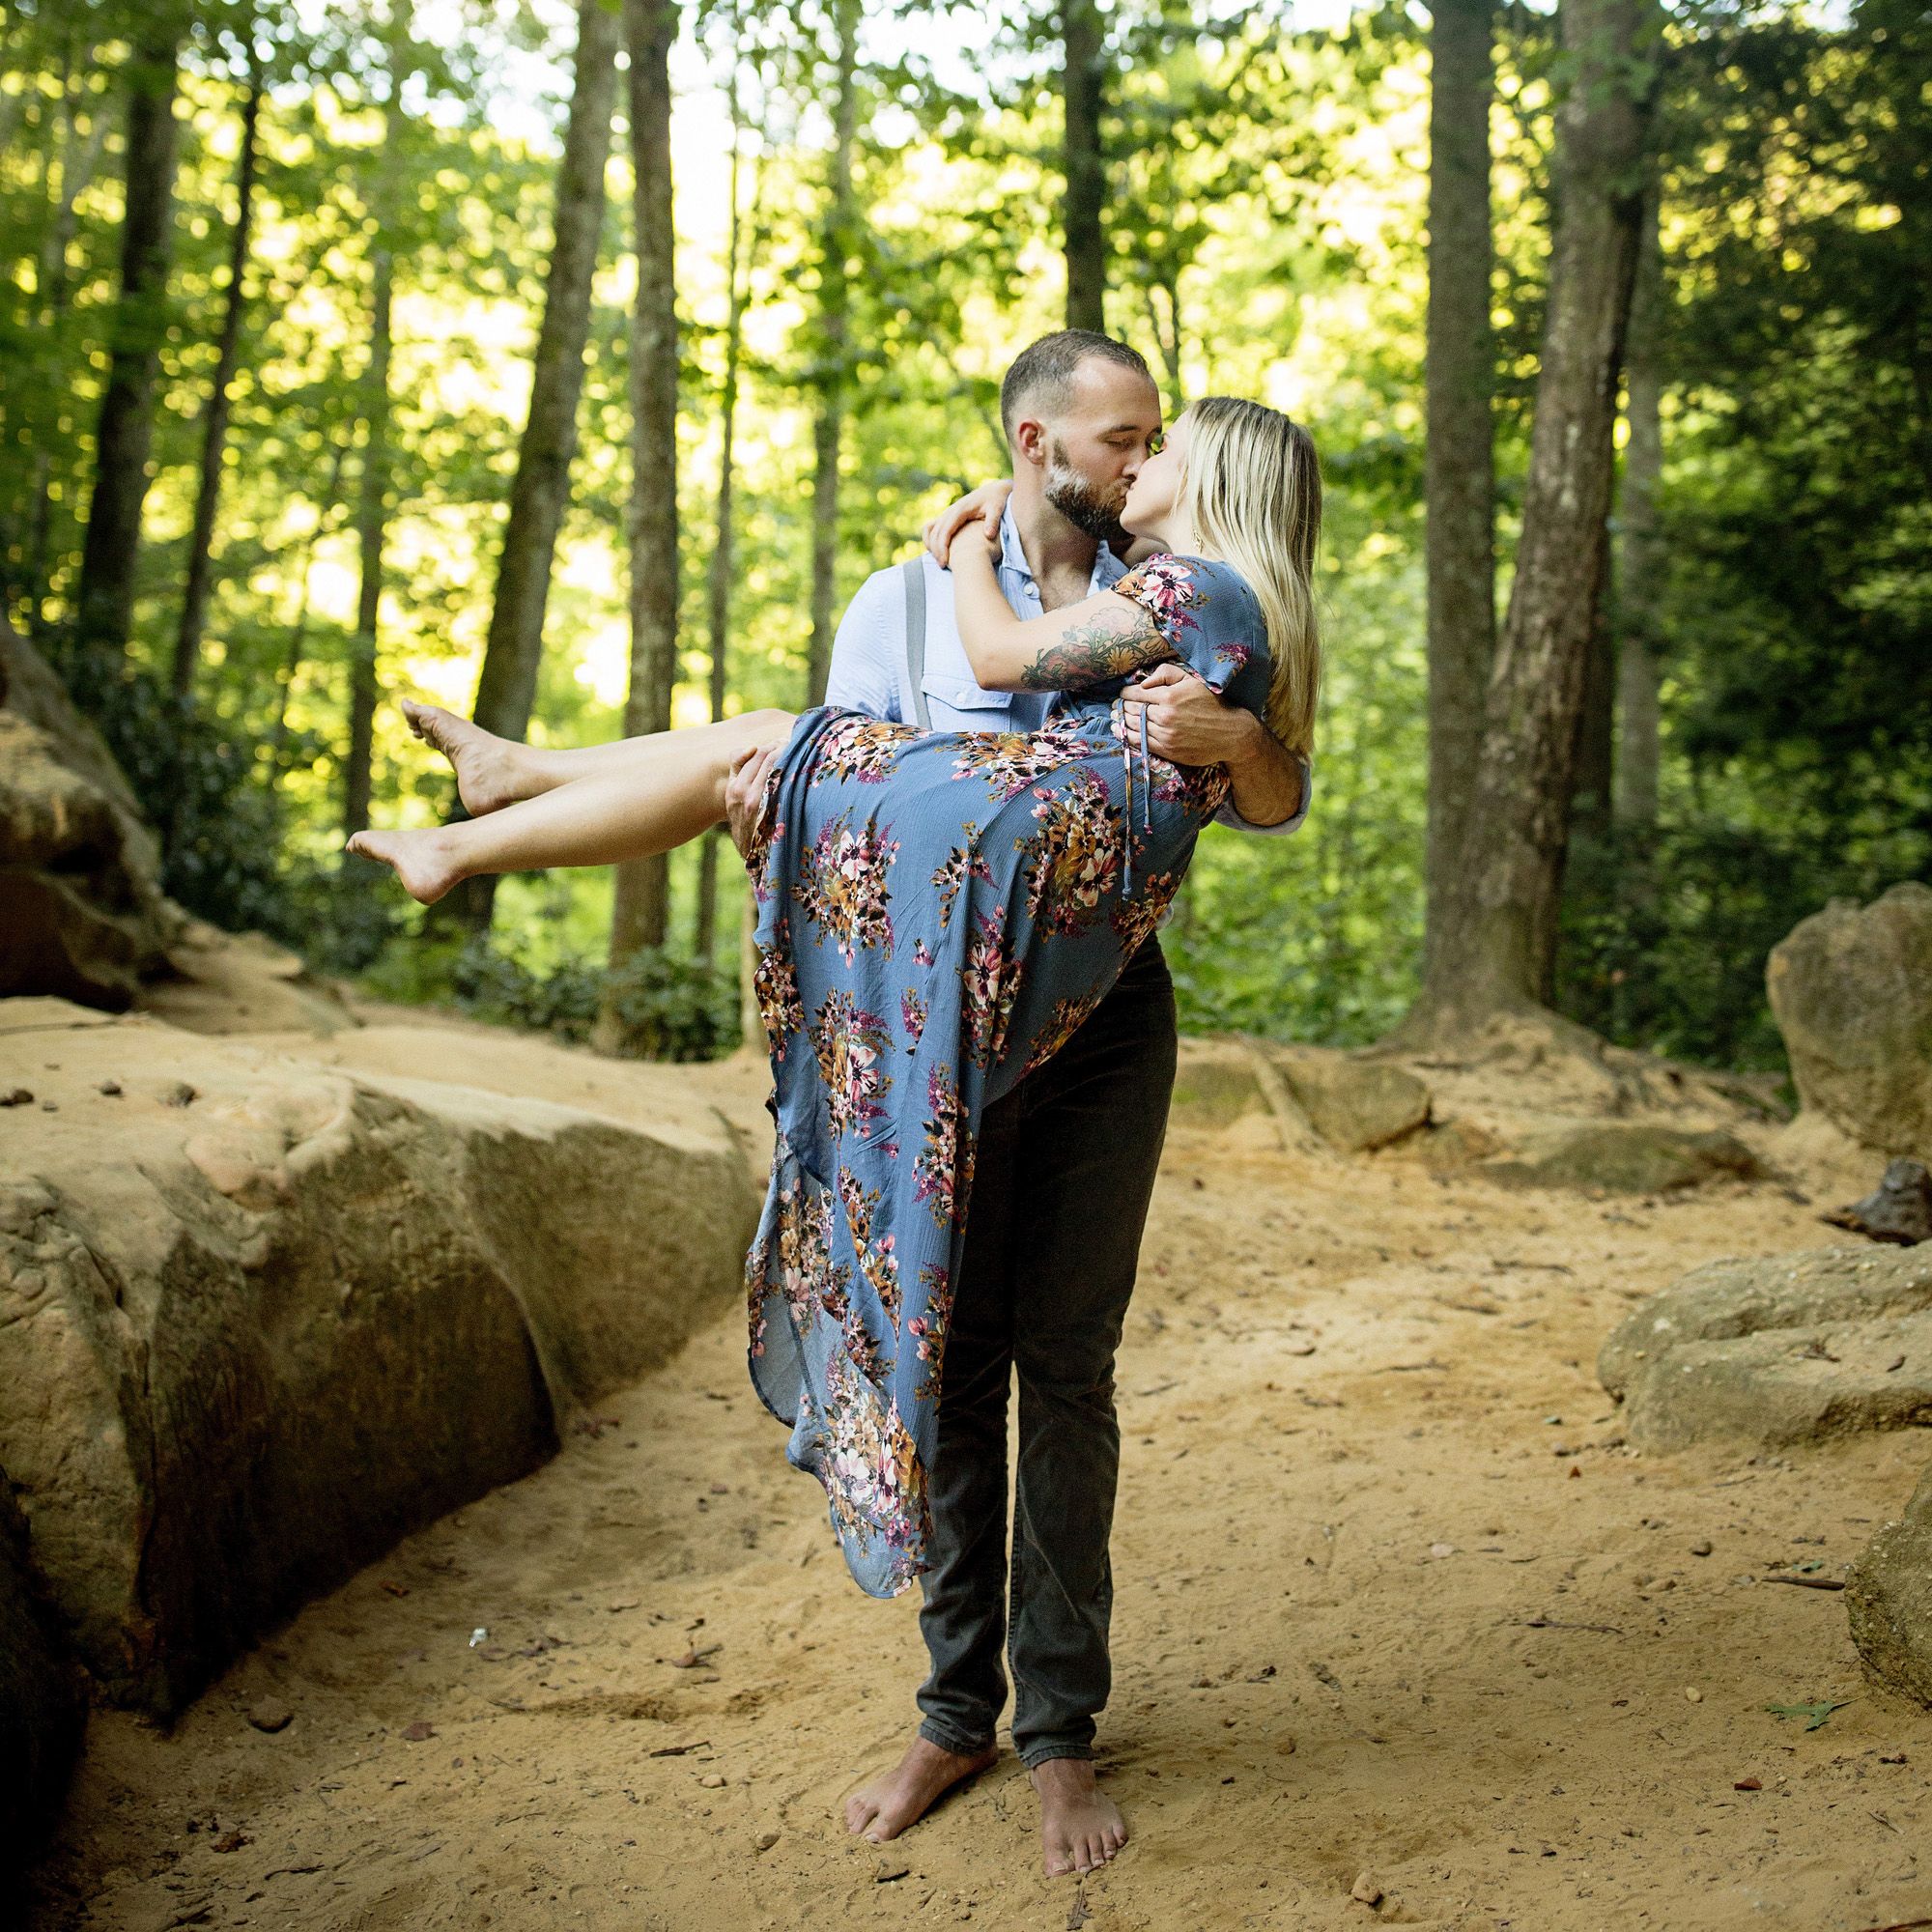 Seriously_Sabrina_Photography_Red_River_Gorge_Engagement_Session_Monika_Steven_30.jpg